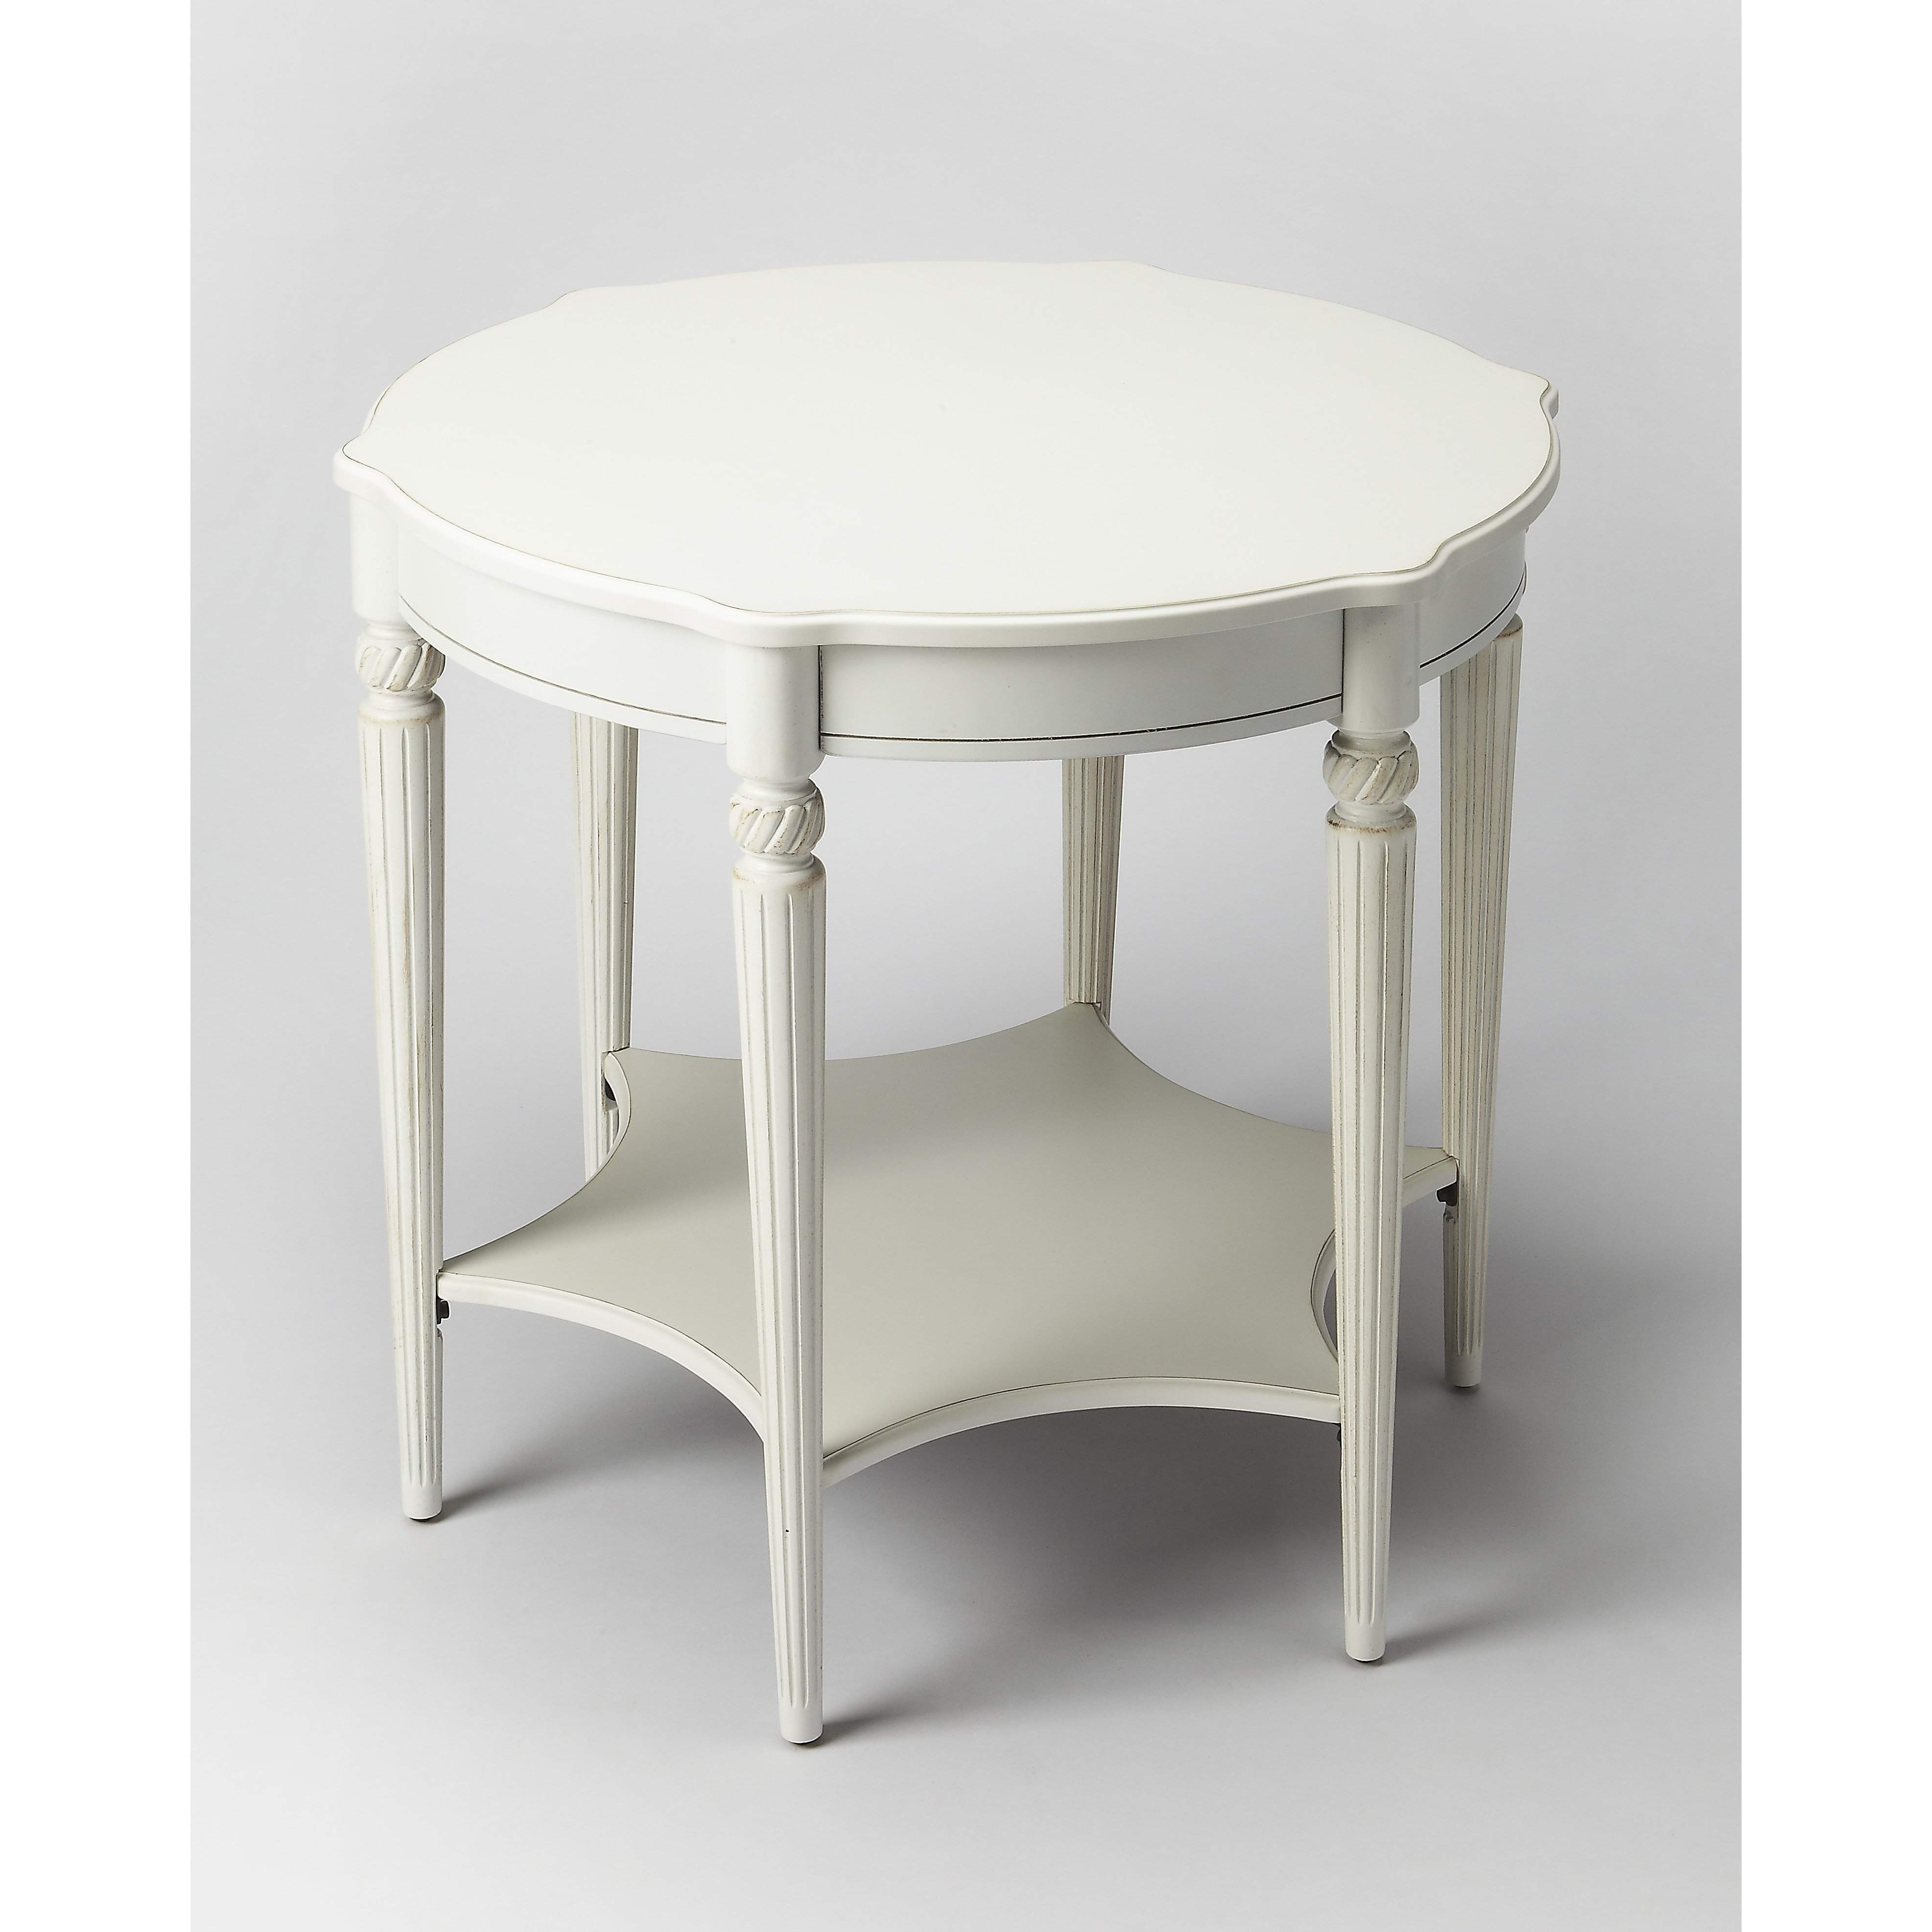 butler bainbridge cottage white accent table this elegant blends classic old world styling with today casual sophistication counter height bench square for gray end skinny console